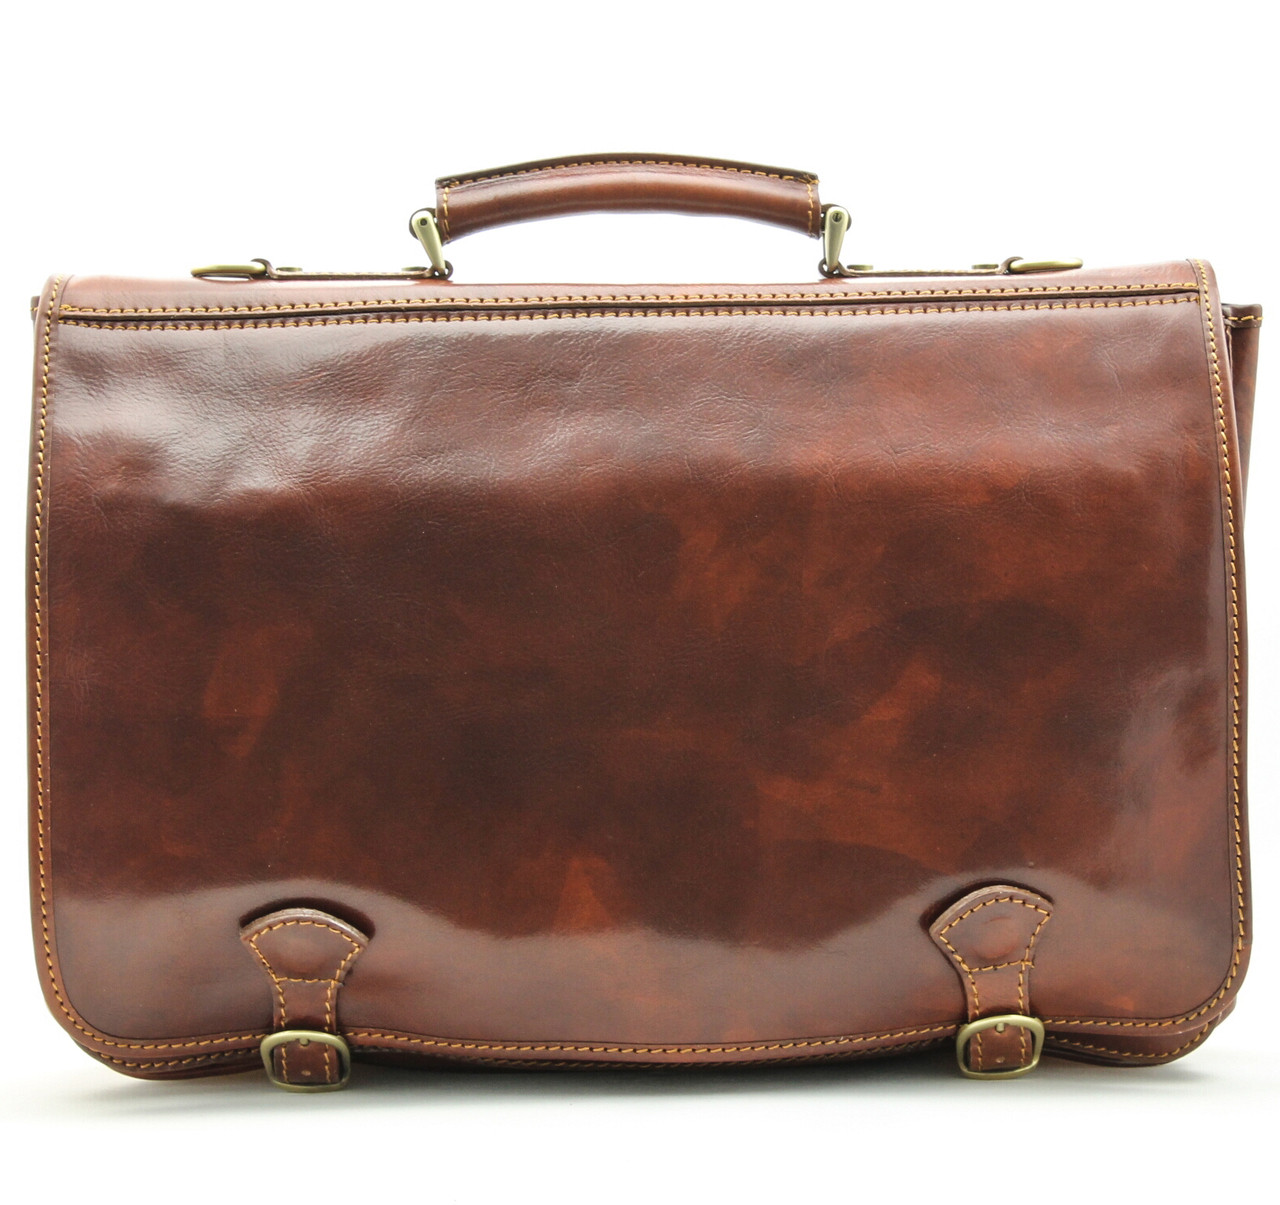 Alberto Bellucci : Messenger Bags, Messenger Bags For Men, Laptop ...